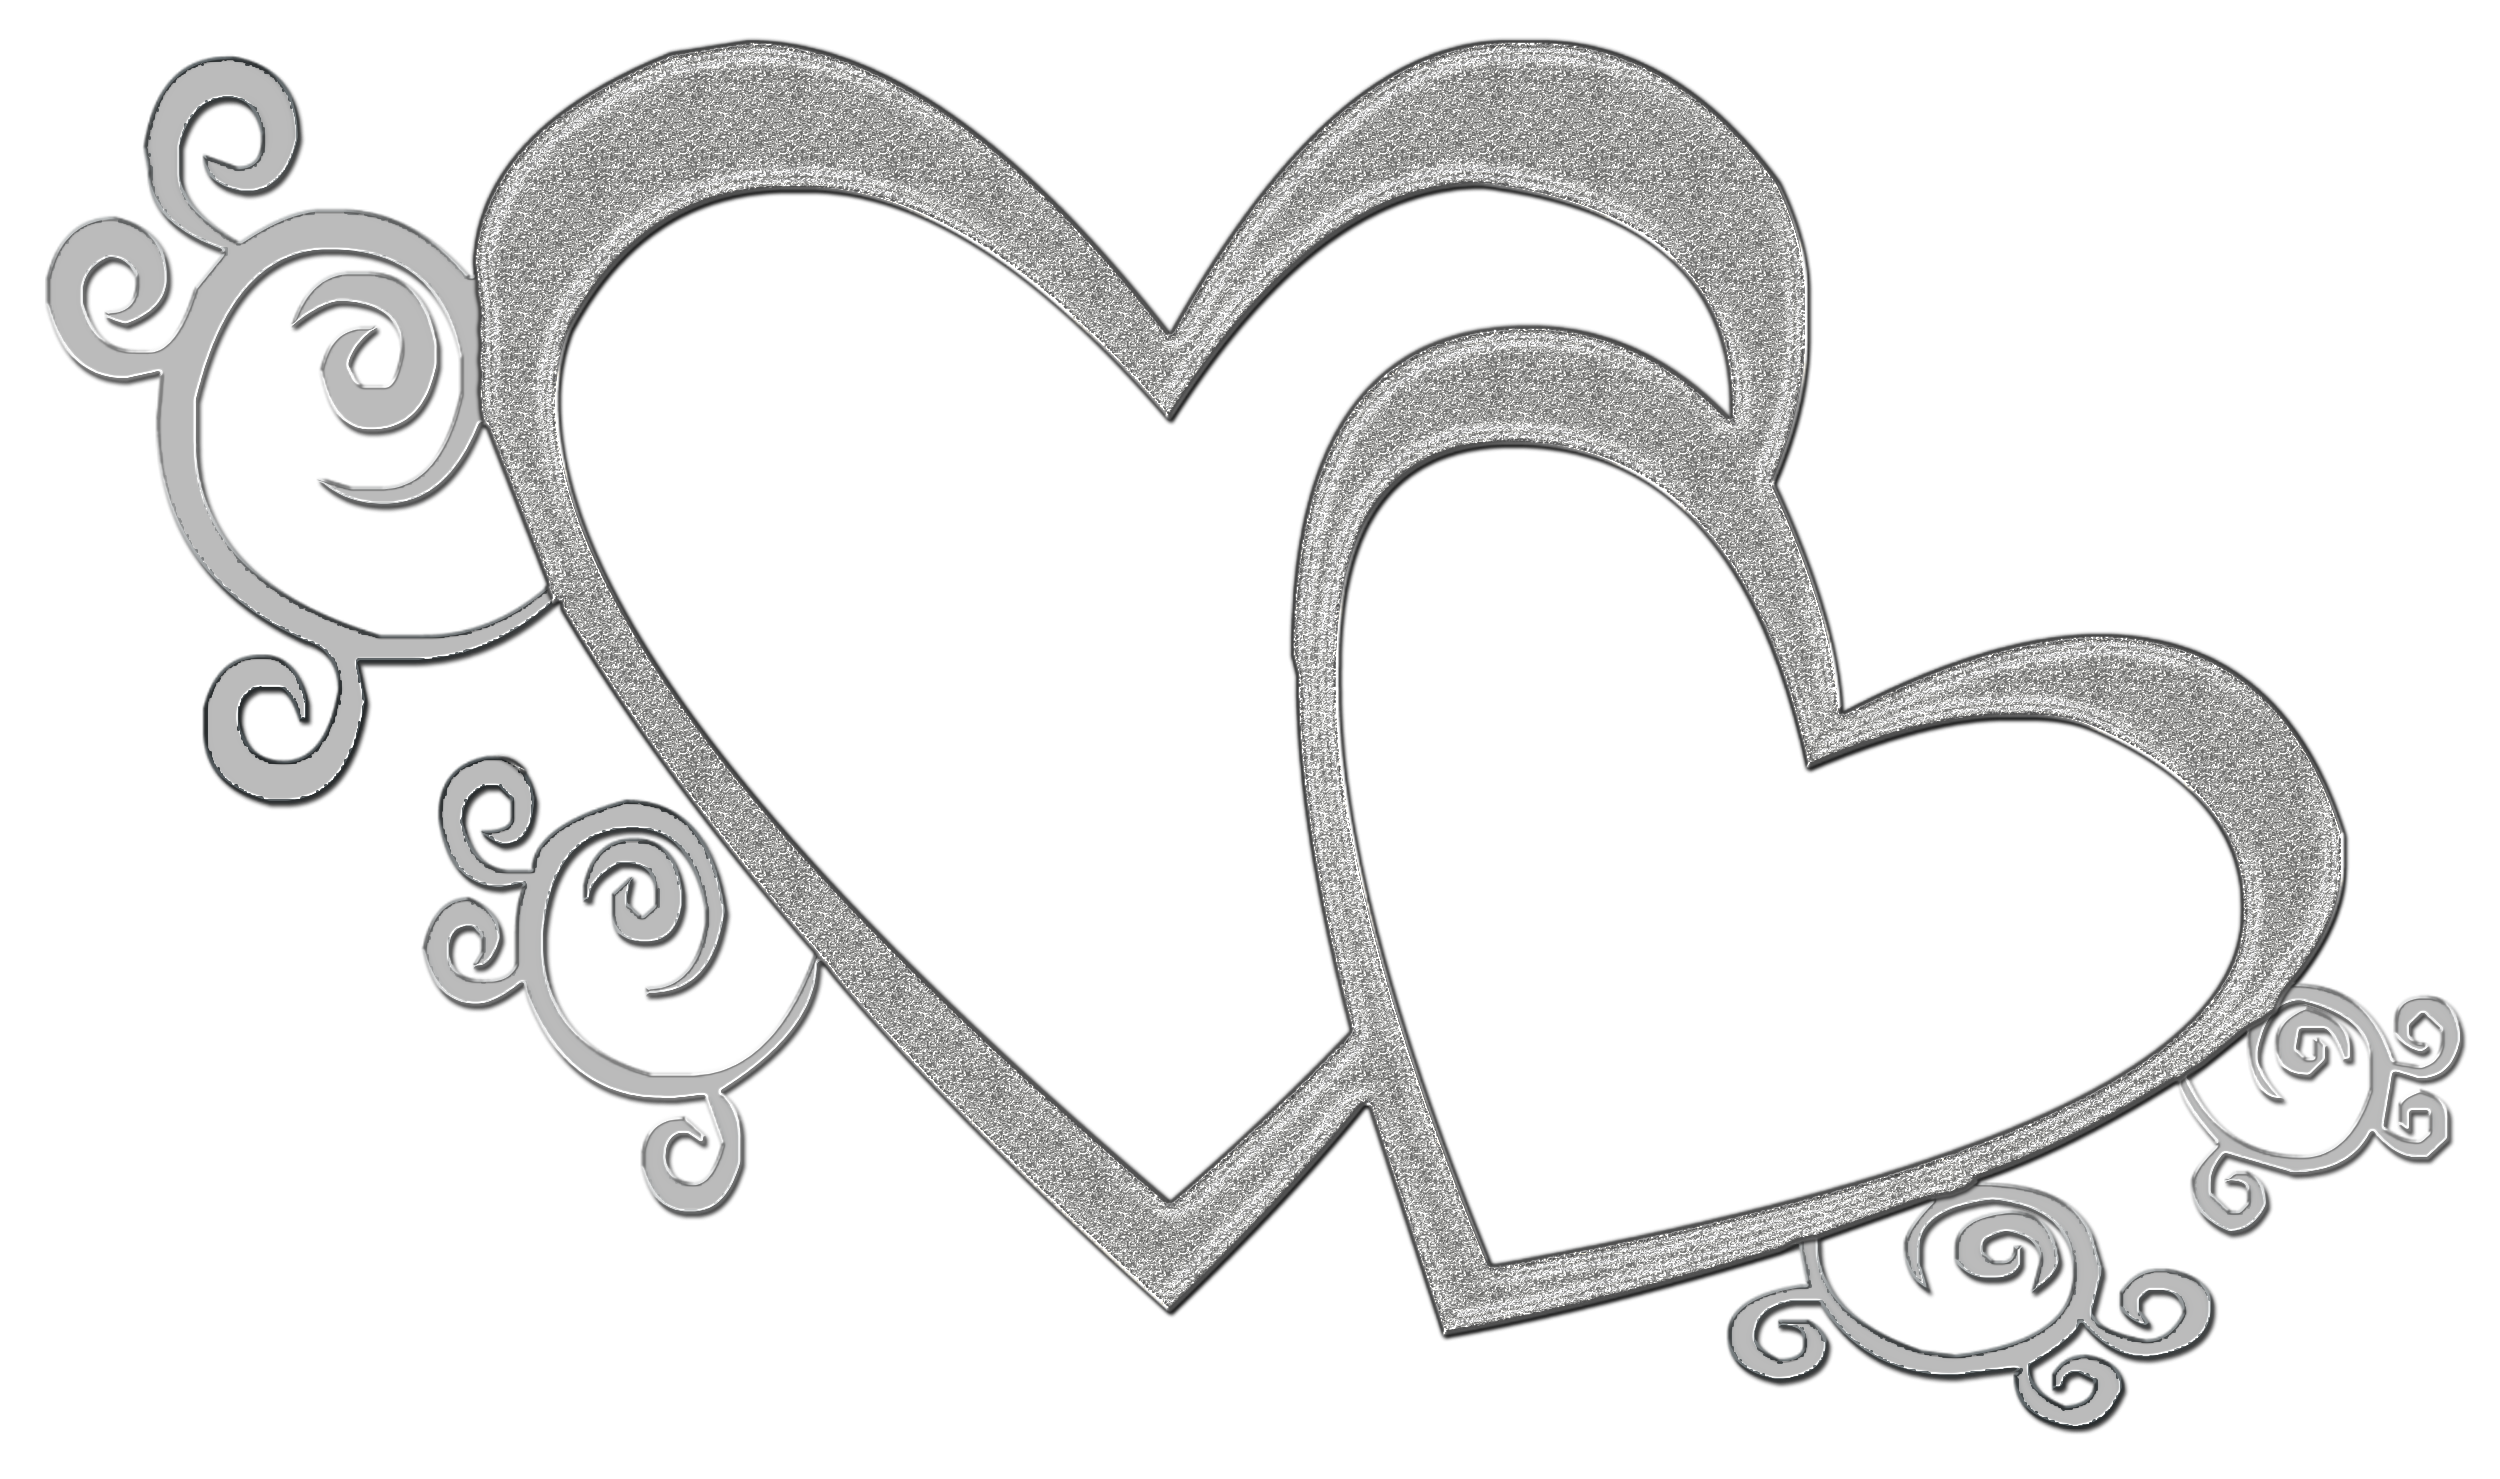 Heart black and white double heart clipart black and white.